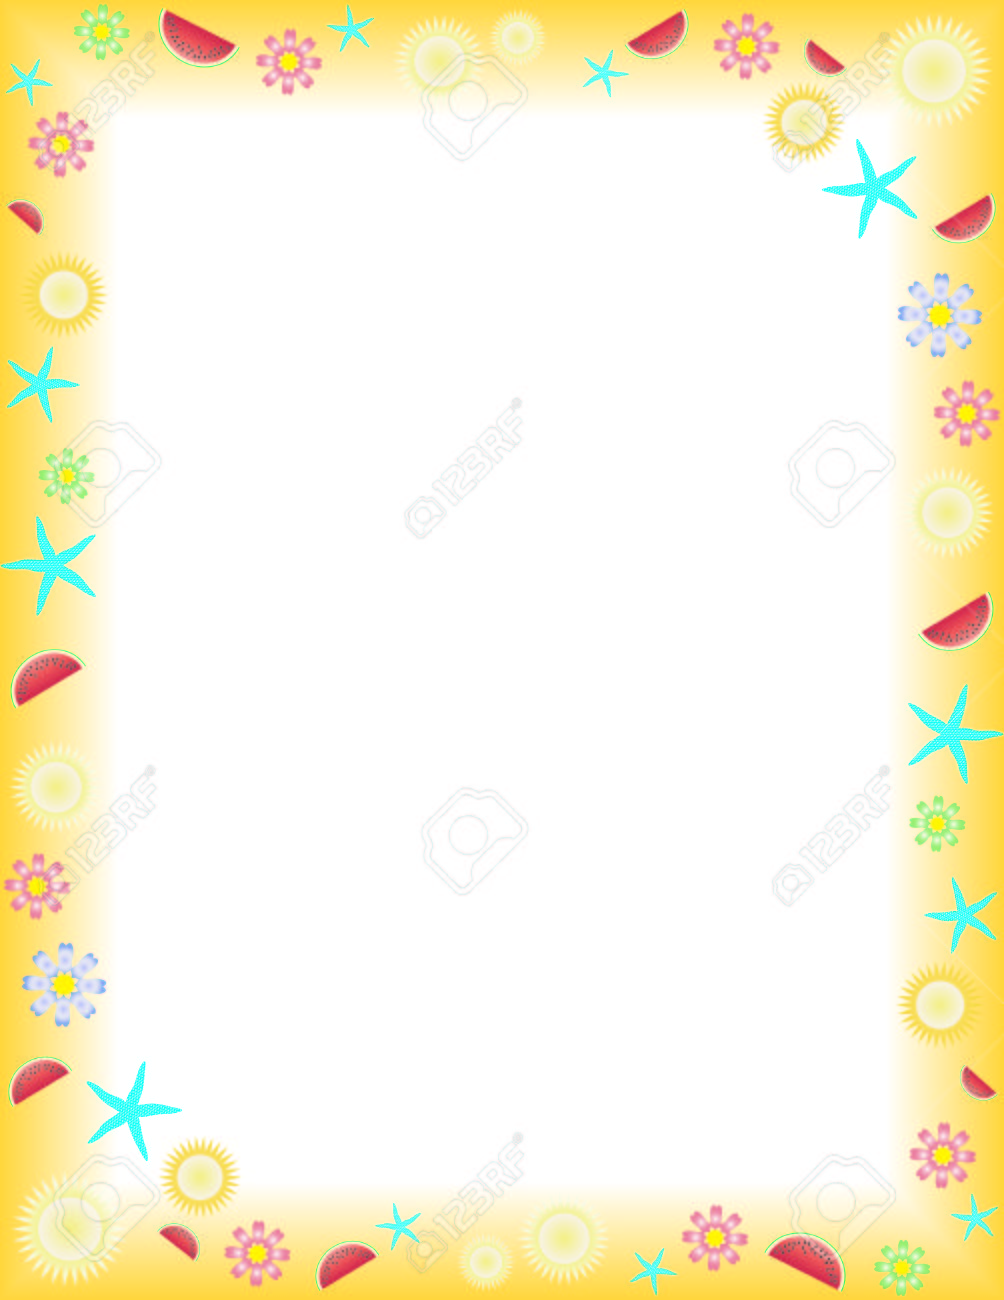 Summer Frame On A Letter Paper Format Royalty Free Cliparts, Vectors ...